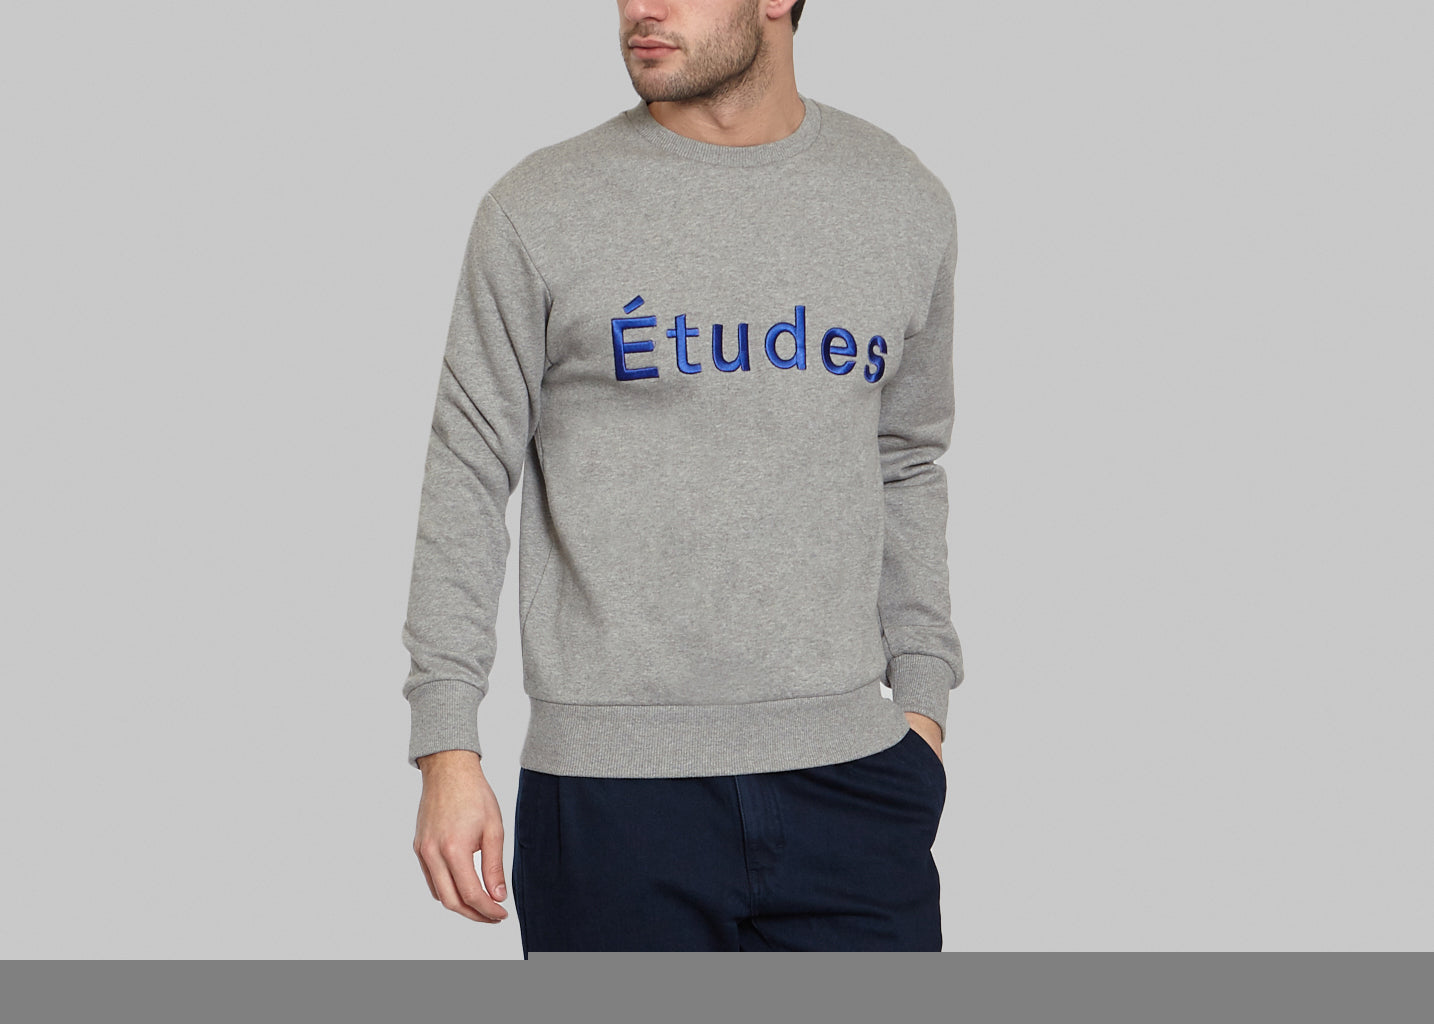 Etudes Star Sweatshirt 35339